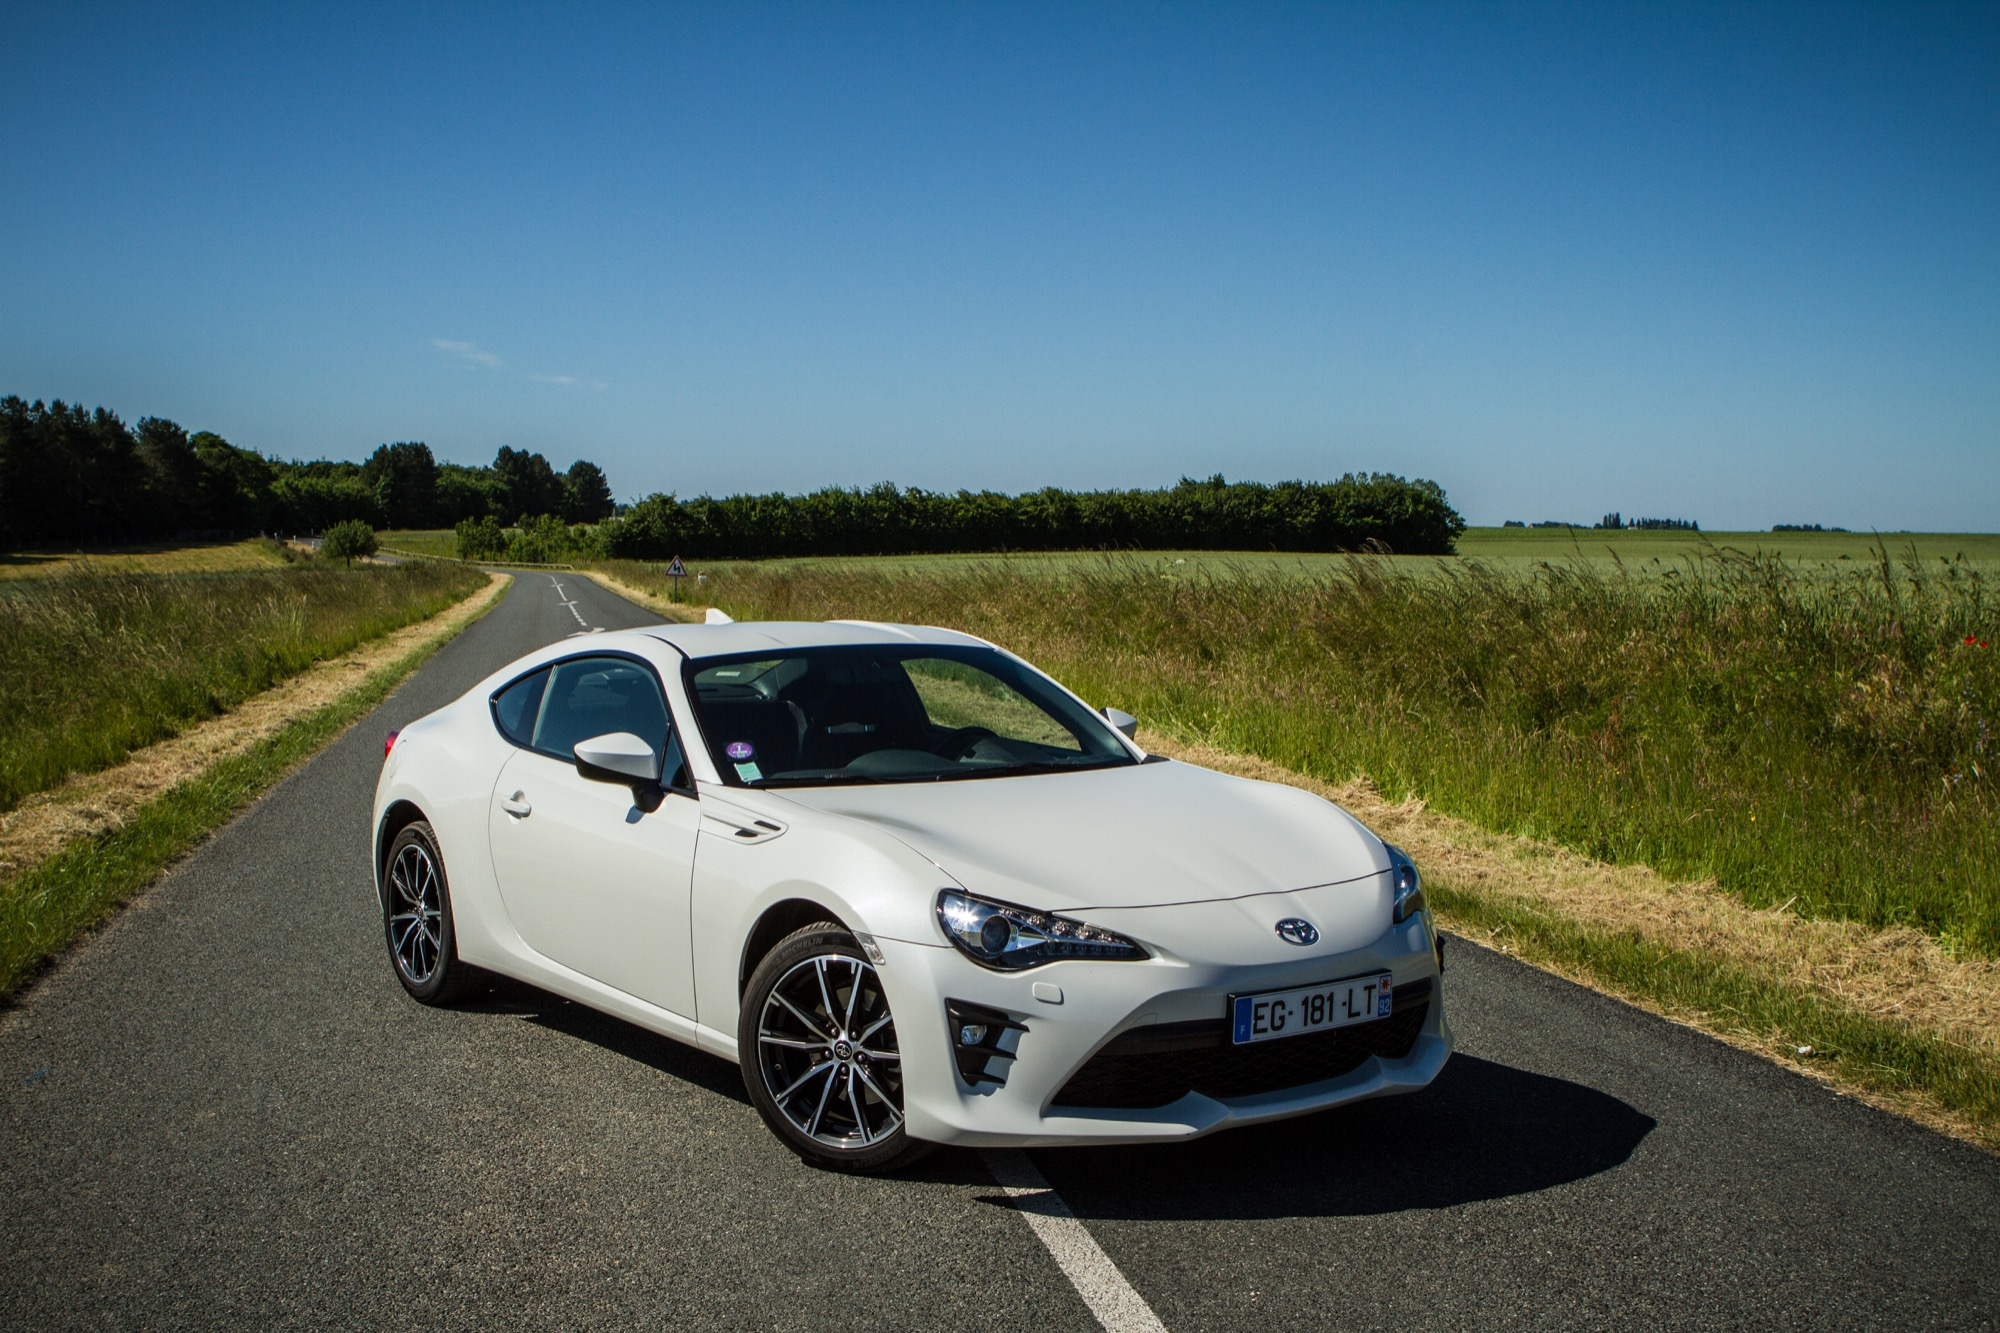 essai toyota gt86 exterieur 54 le blog de viinz. Black Bedroom Furniture Sets. Home Design Ideas